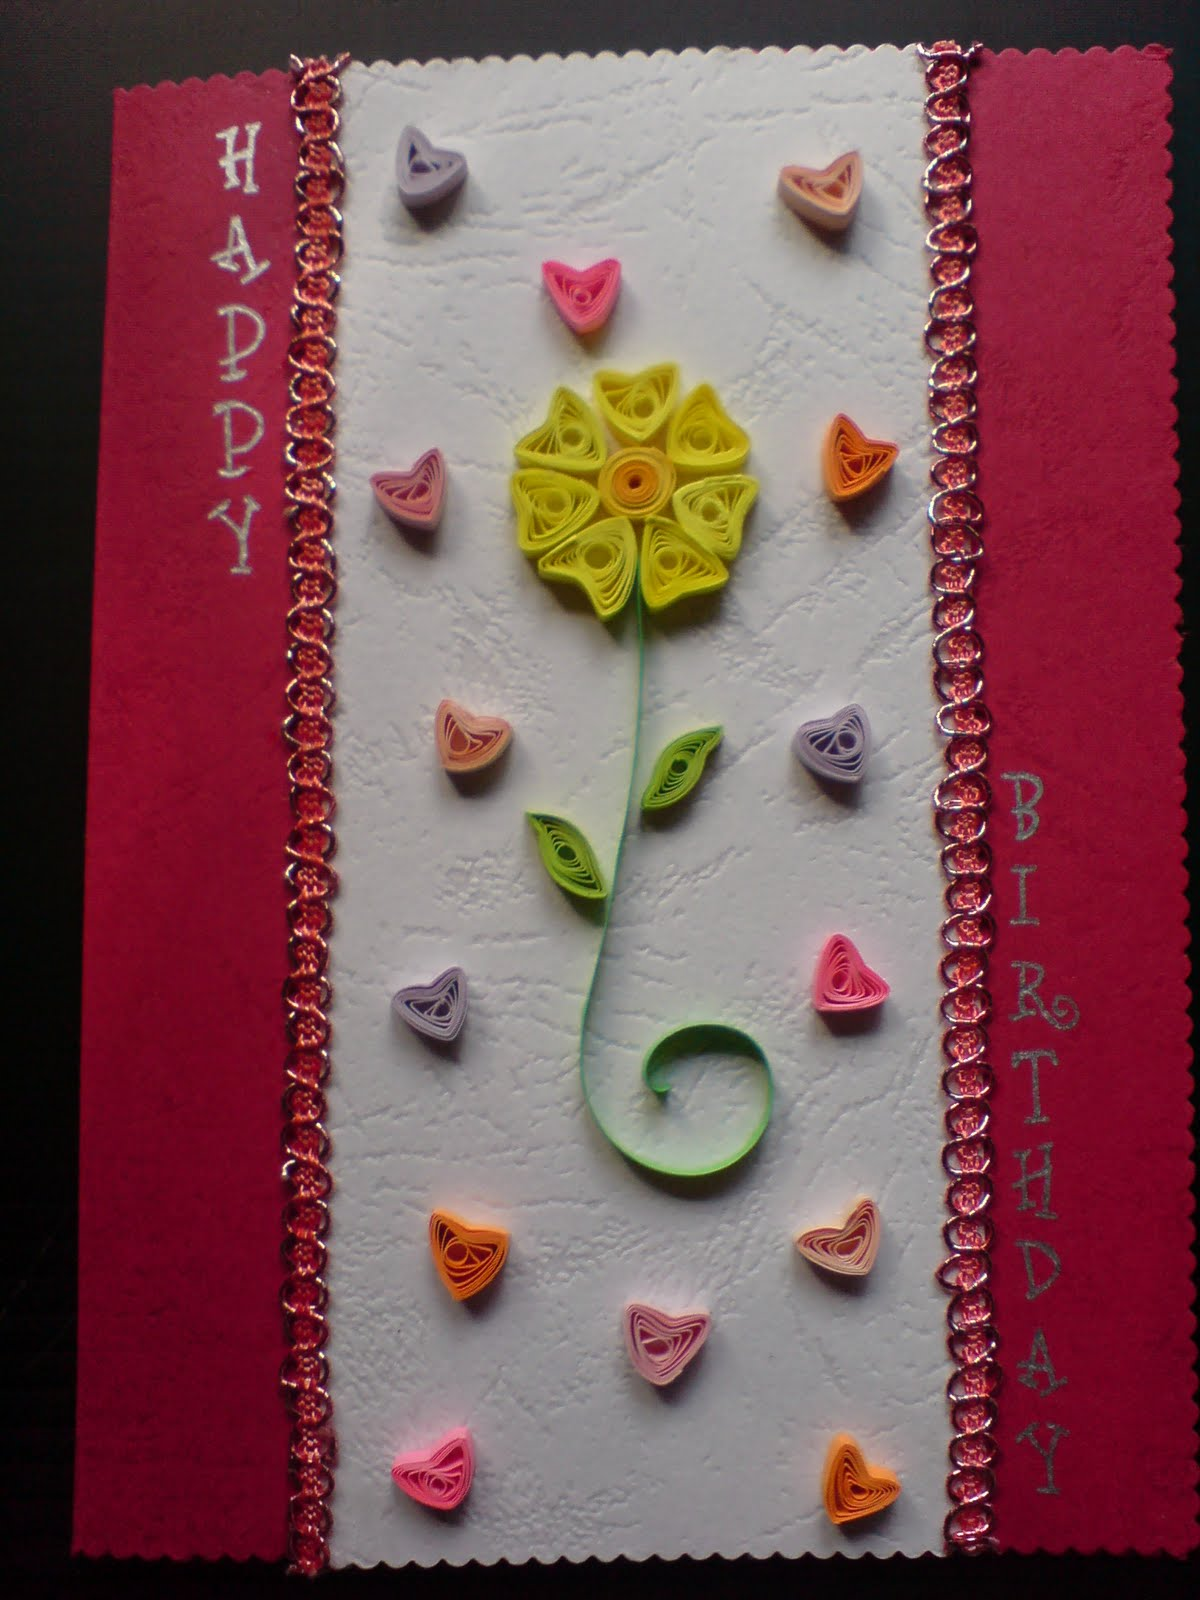 Chami Crafts - Handmade Greeting Cards: Hearts Birthday Card